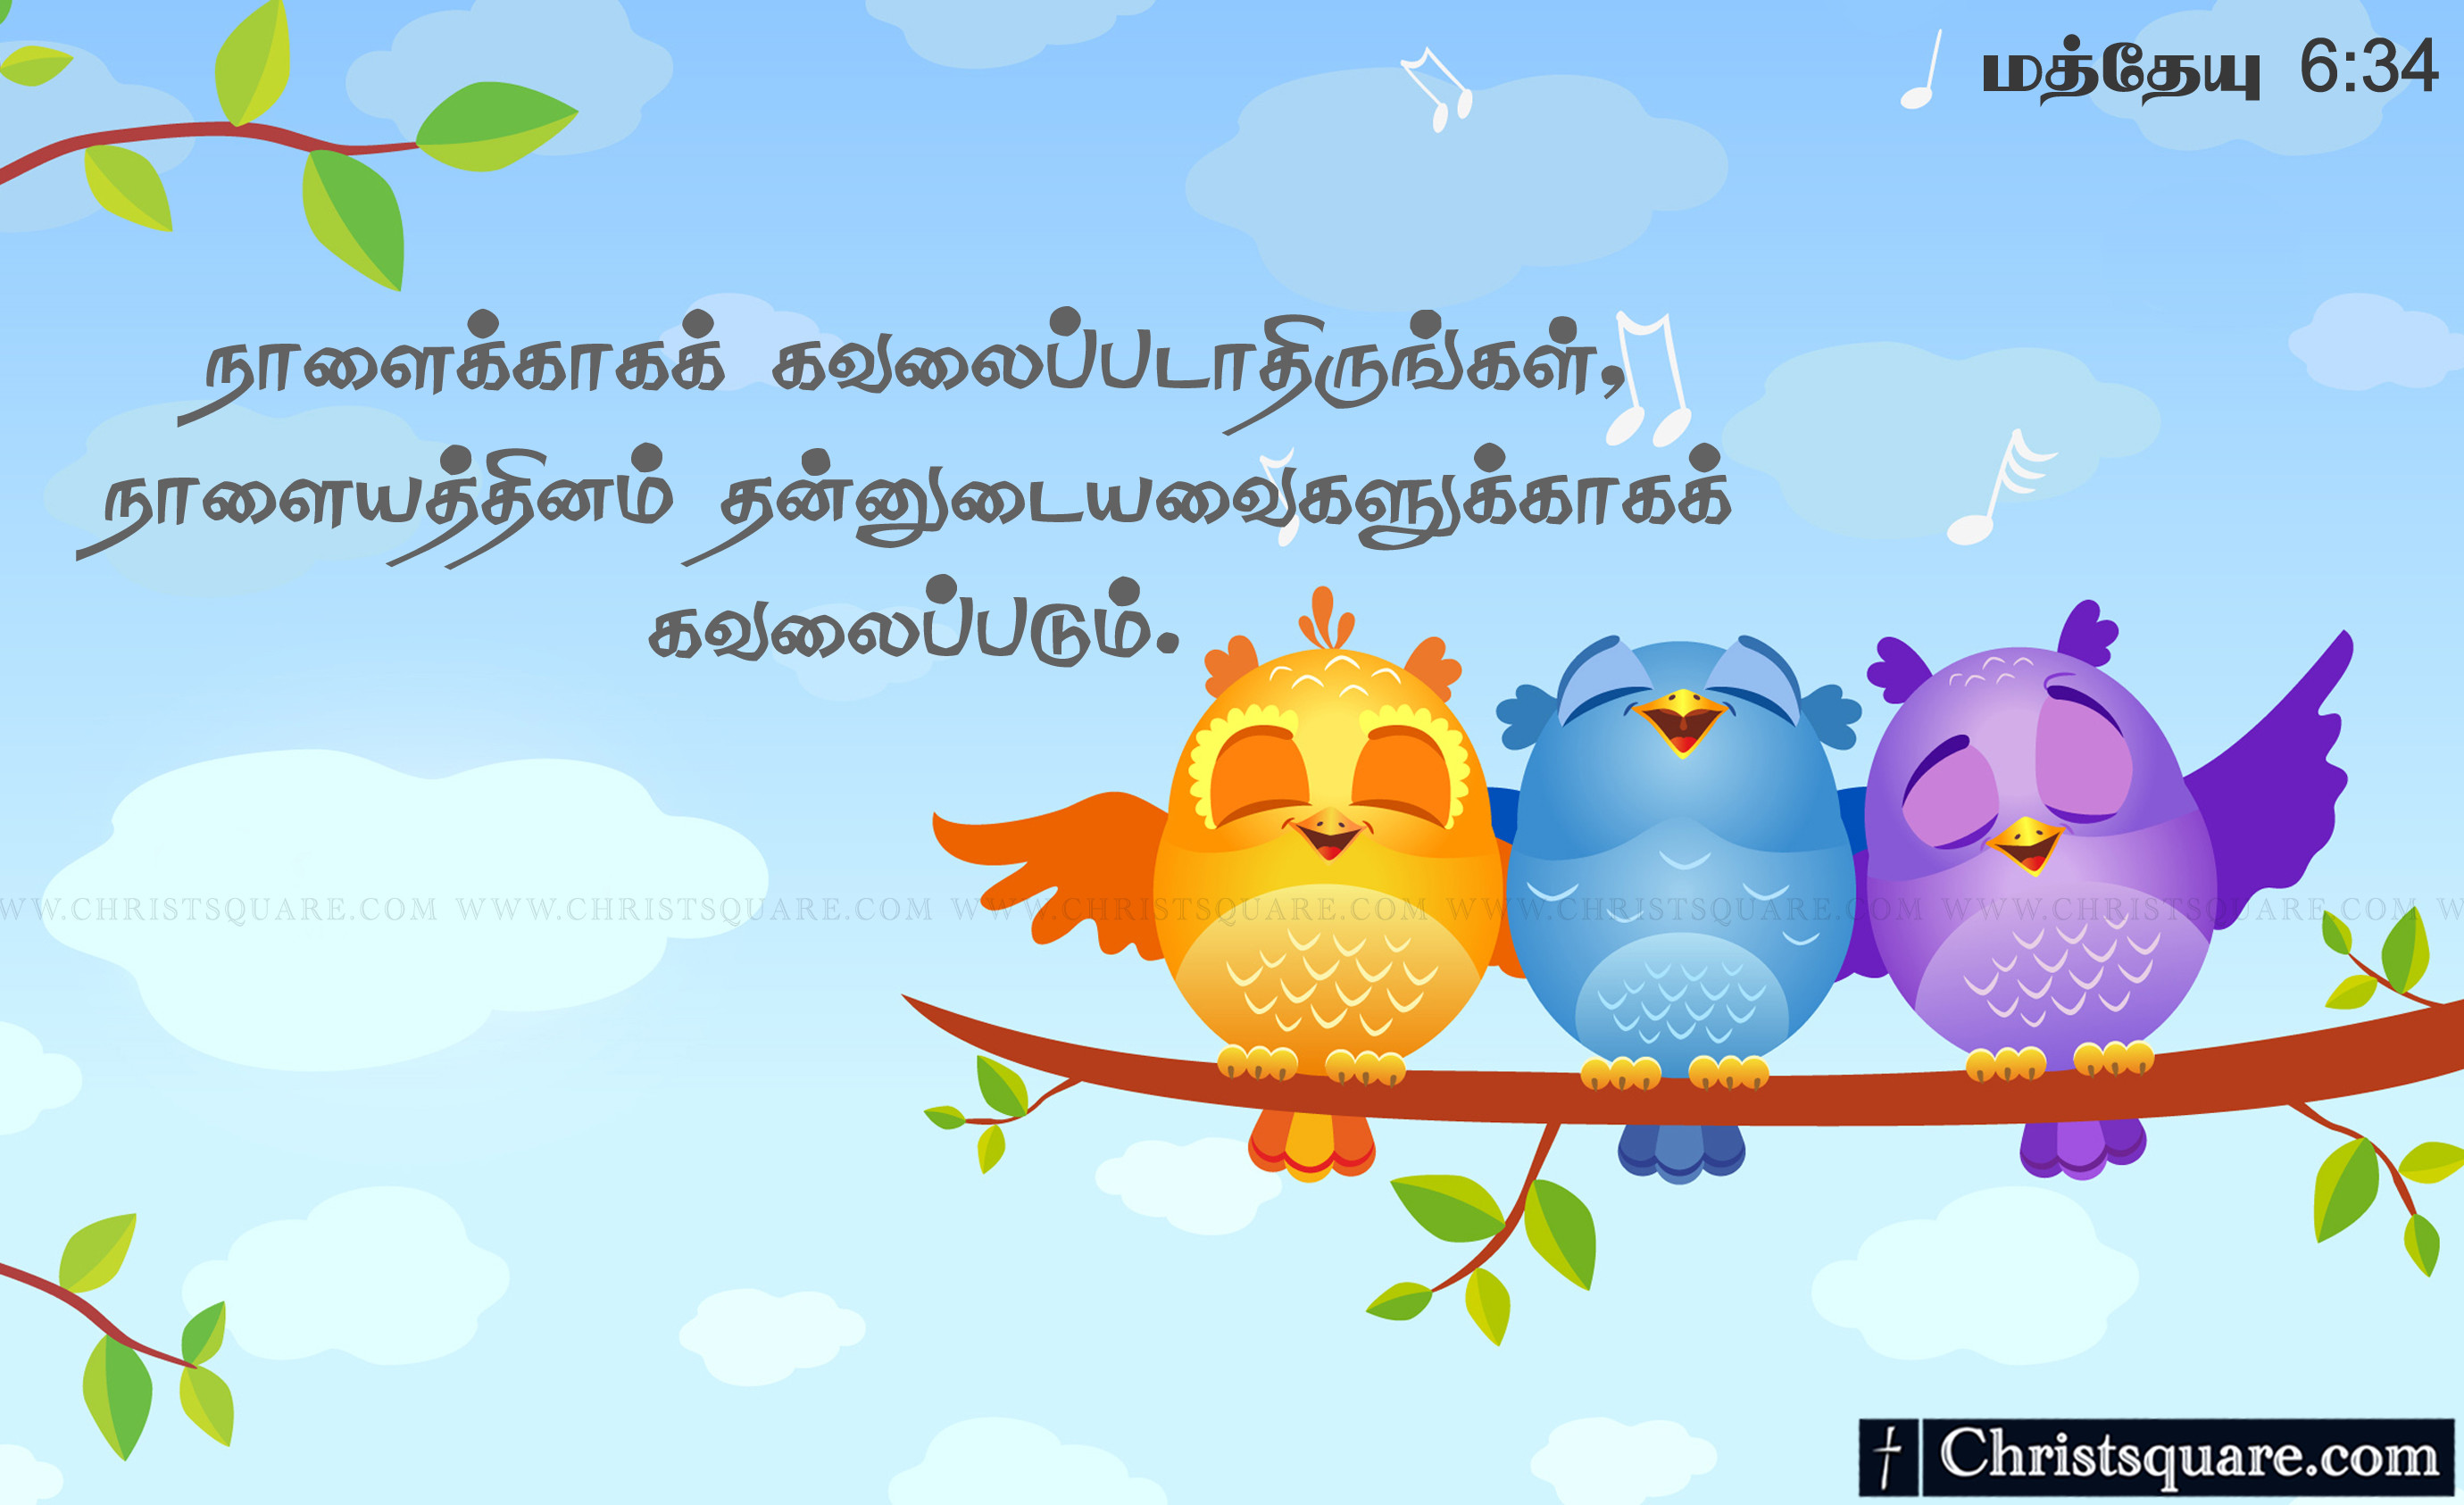 Great Wallpaper Bible Verse Tamil